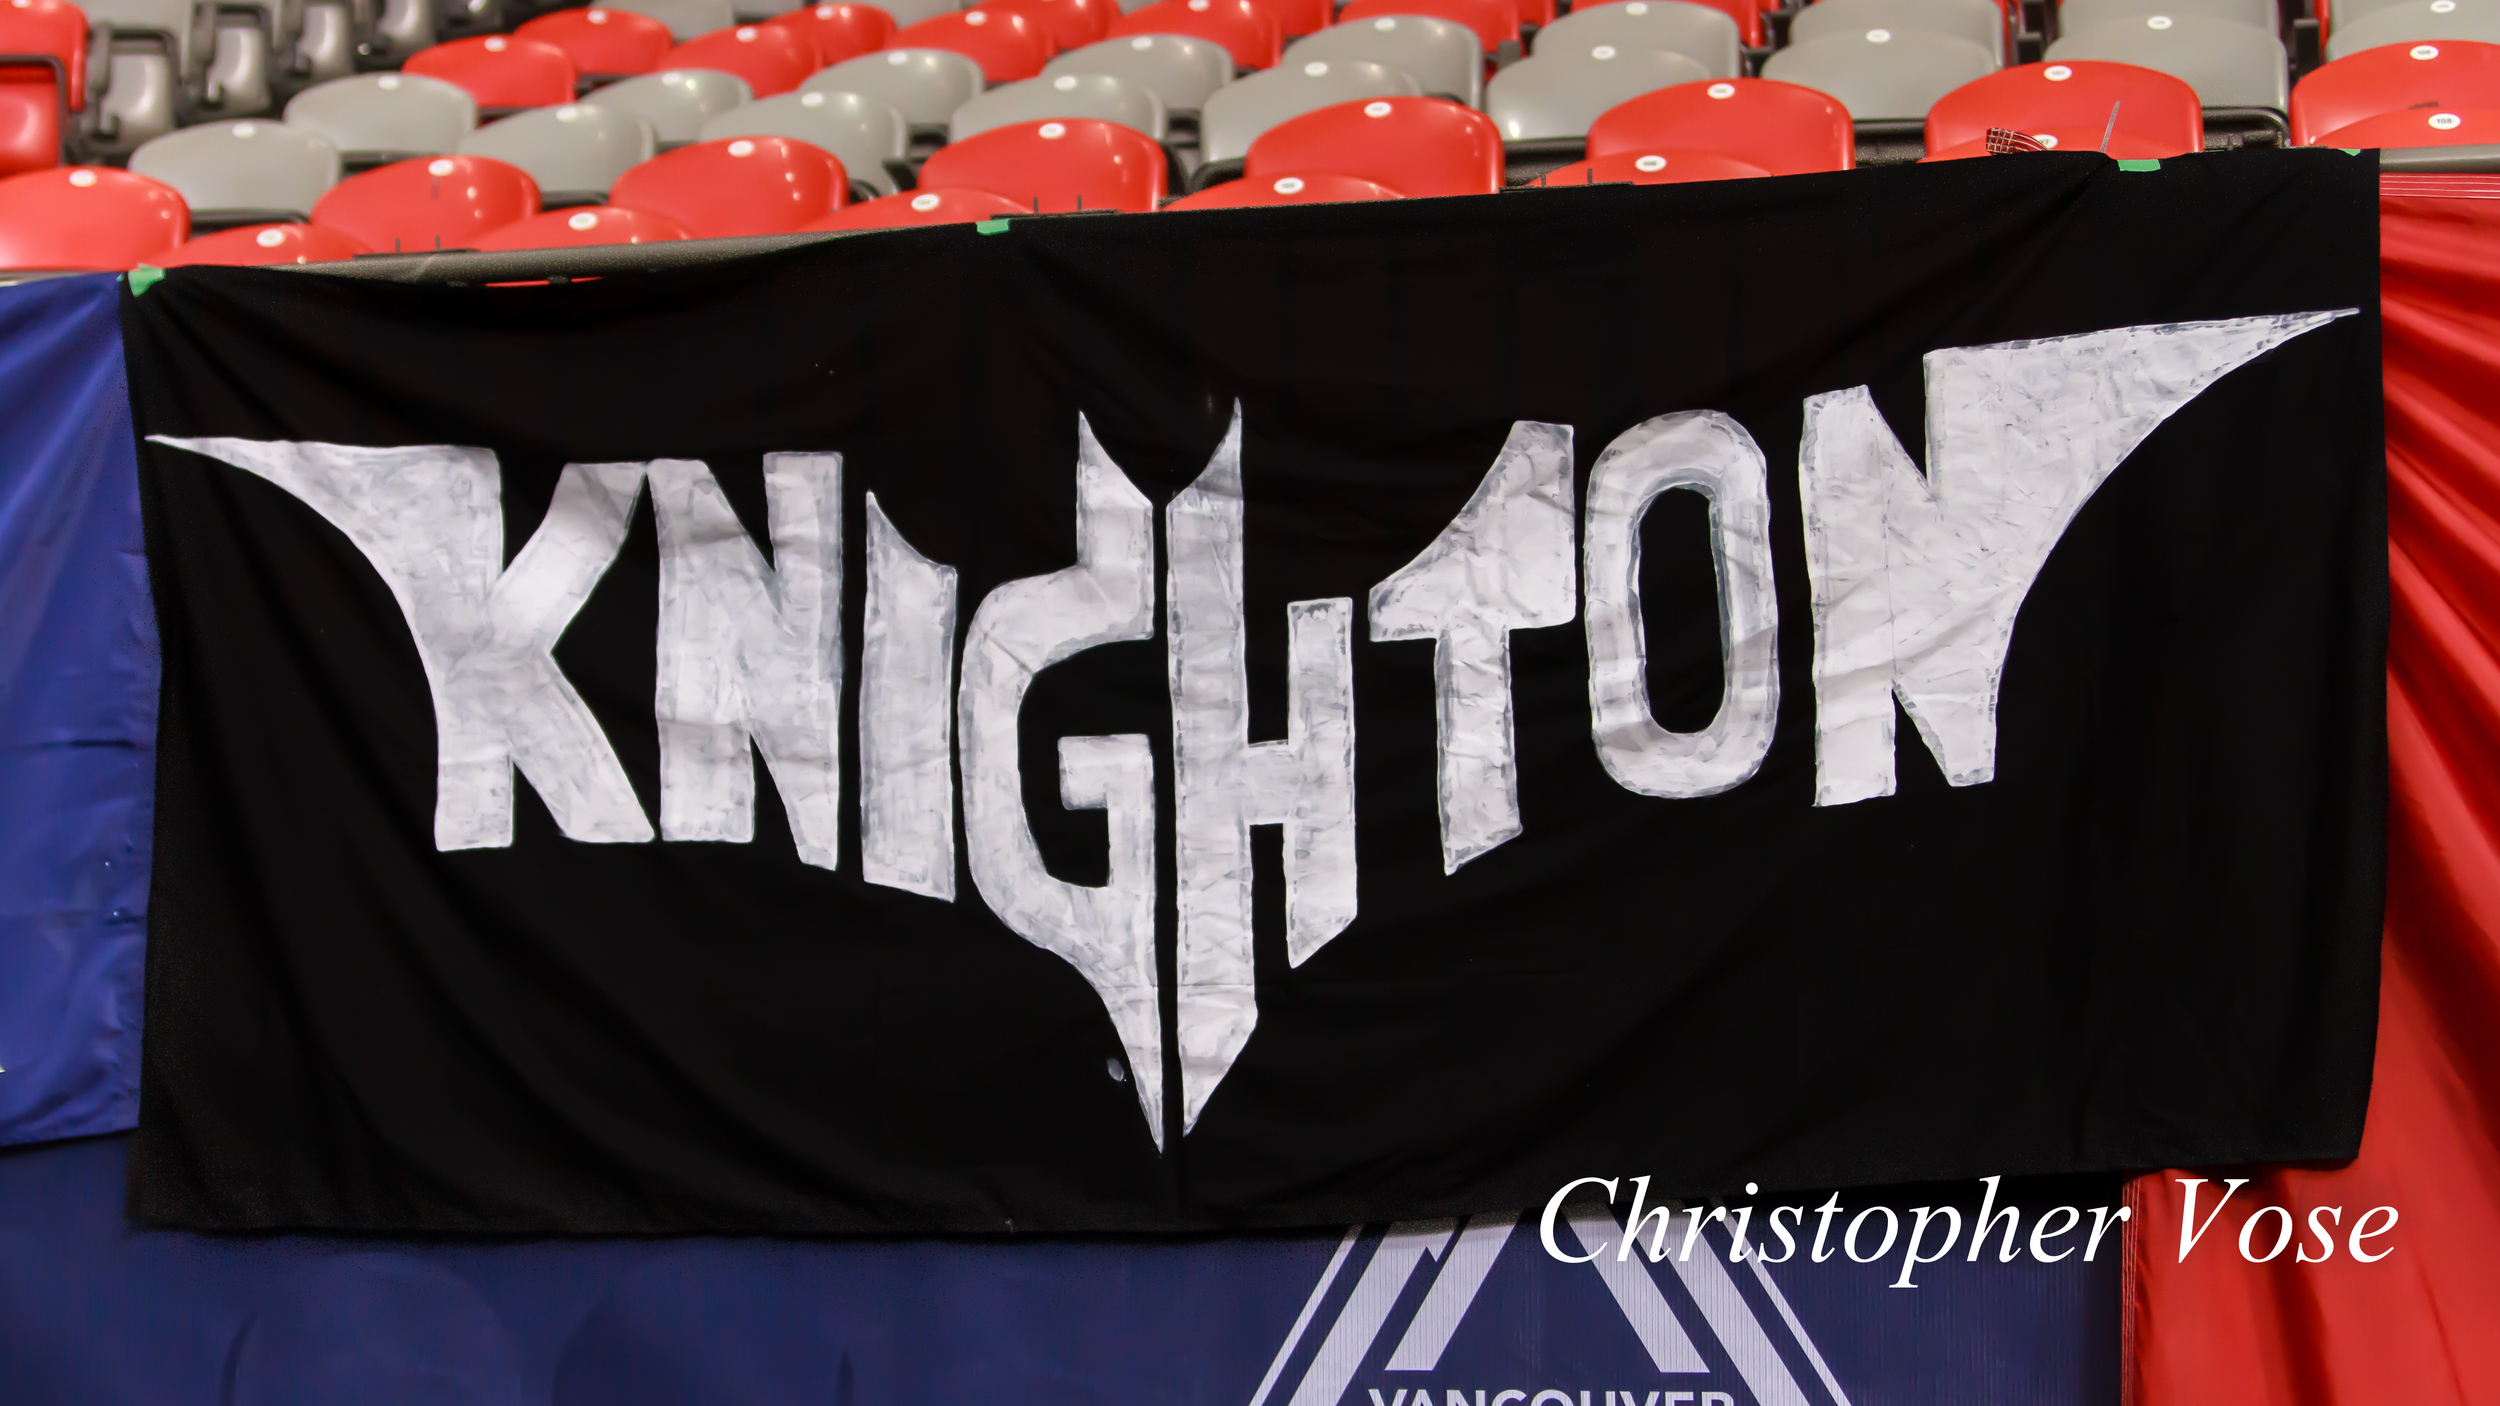 Na na na na na na na na naaah Knighton at BC Place on 2 March 2013.